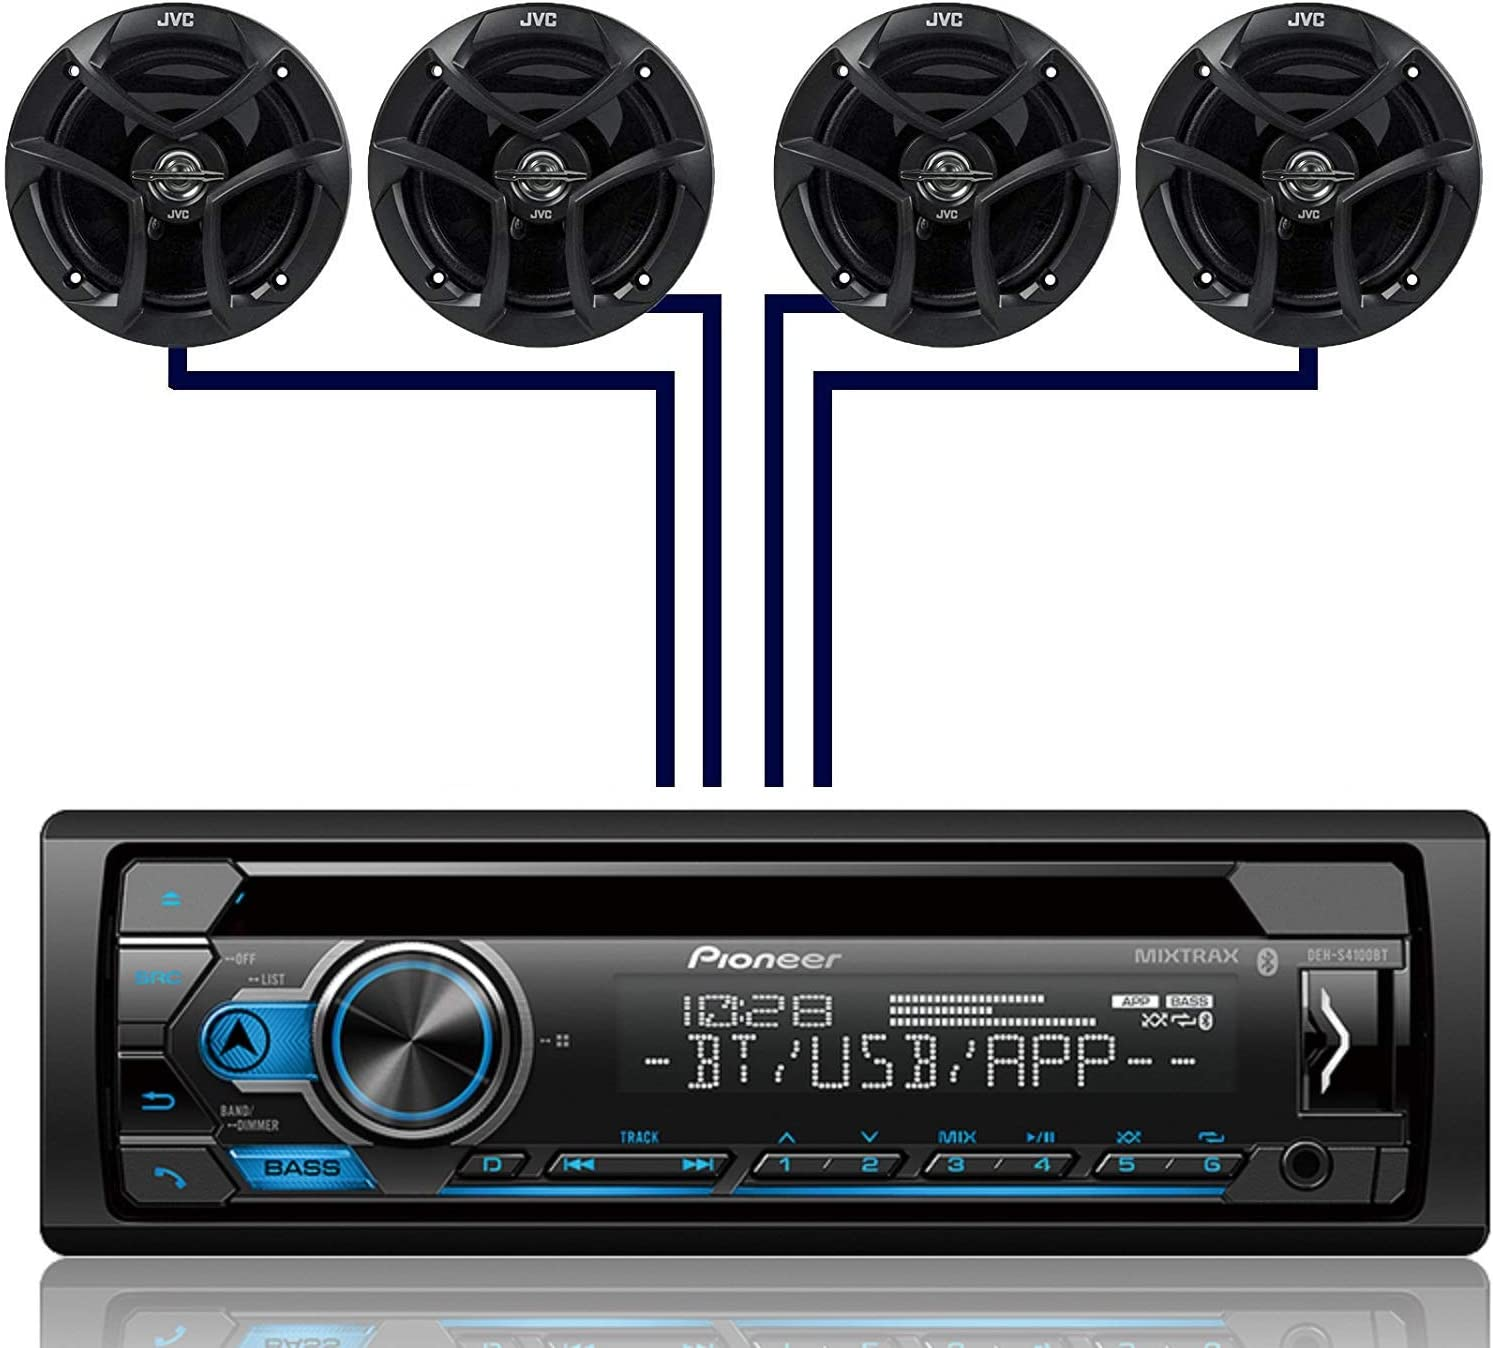 Pioneer DEH-S4100BT Single DIN Bluetooth InDash CD USB MP3 AUX AM FM MIXTRAX Pandora Spotify Android Car Stereo Receiver with 2 Pairs JVC 6.5 300W 2-Way Coaxial Car Speakers